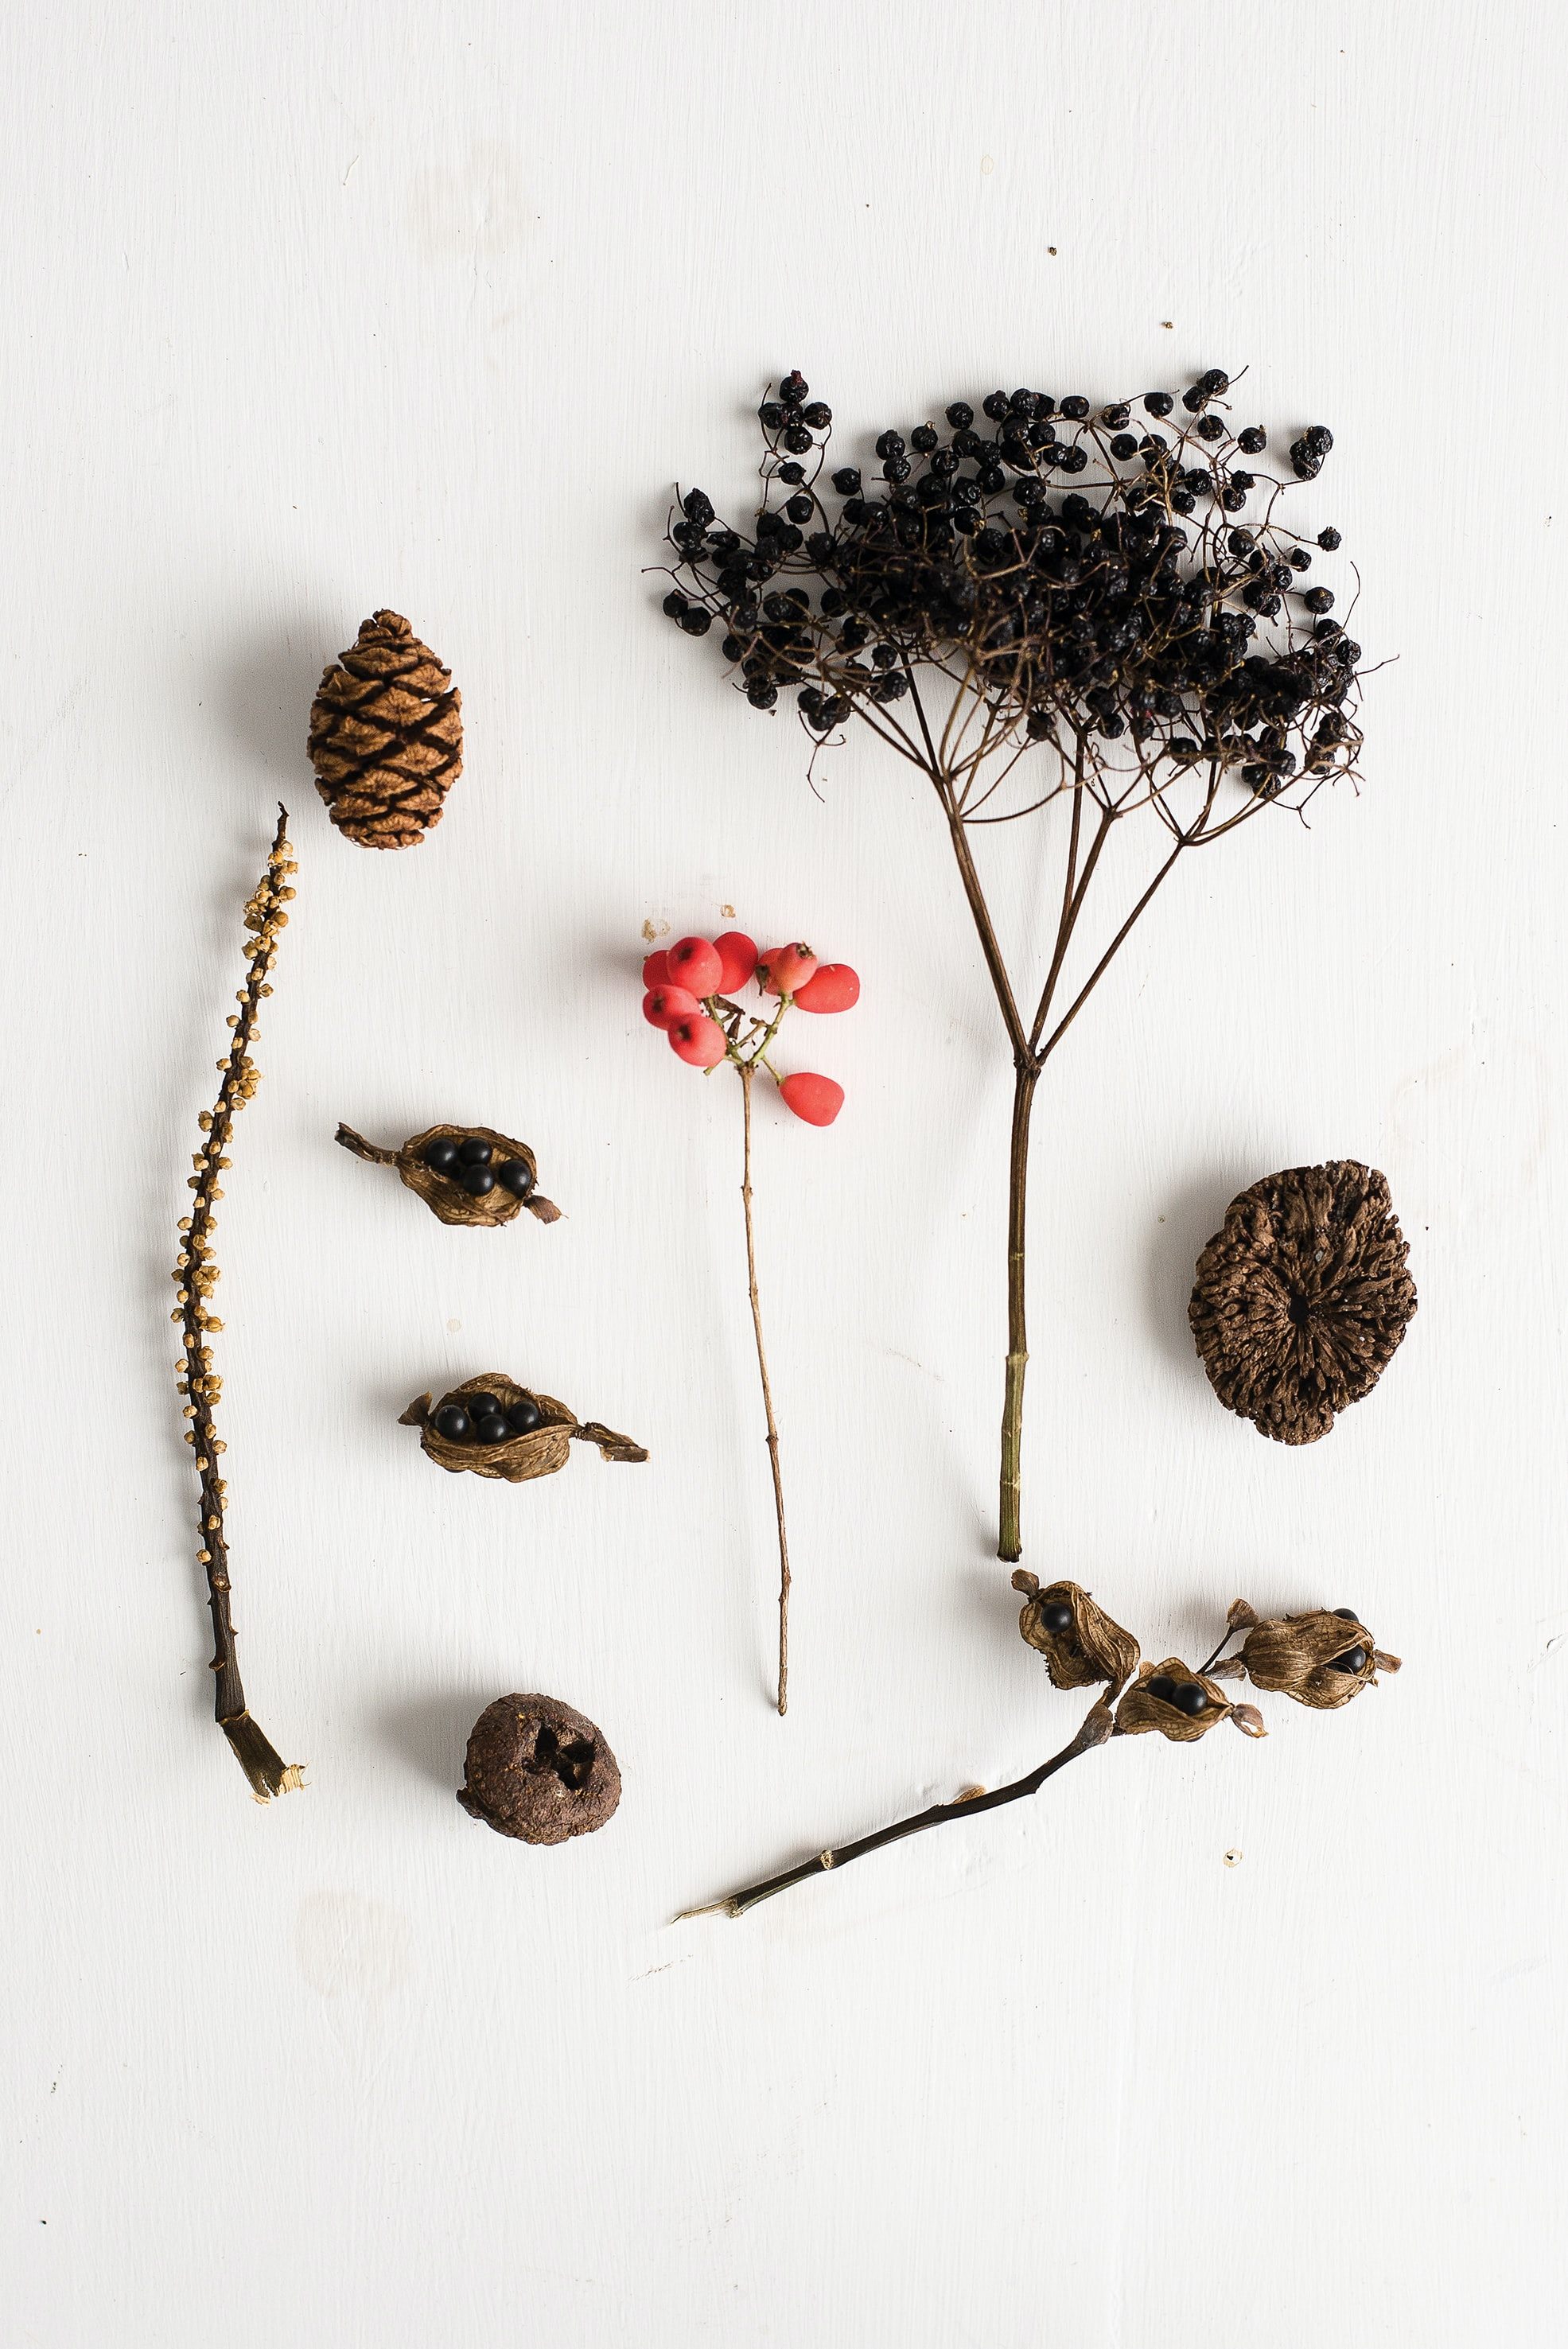 pine cone and dried pepper seeds